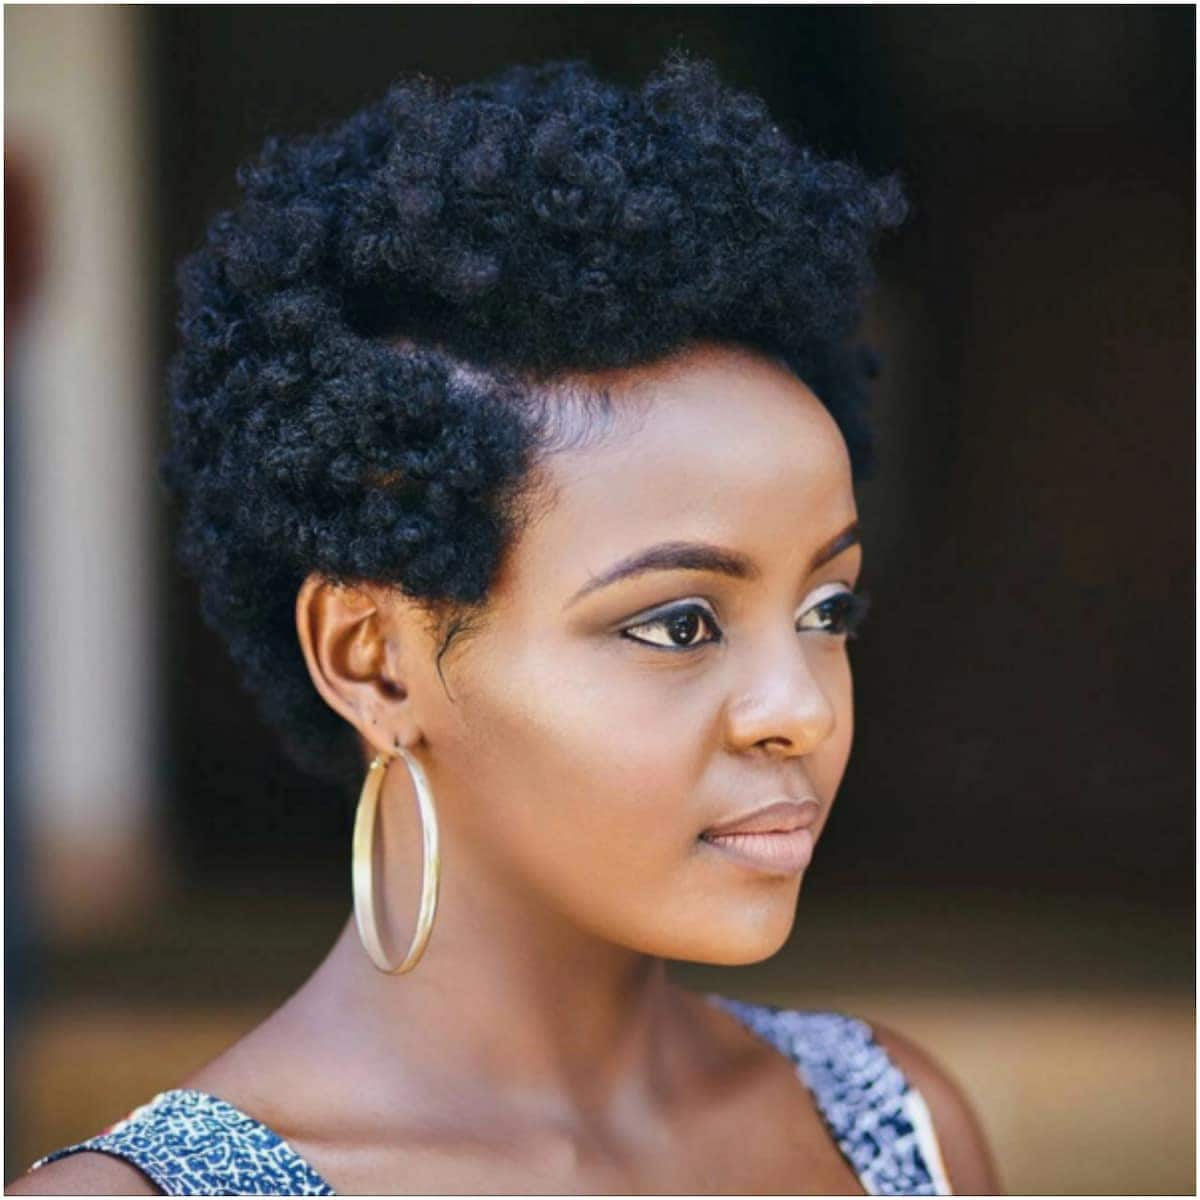 Latest black natural hairstyles for work Natural hairstyles for short hair Natural African hairstyles Hairstyles for short natural hair